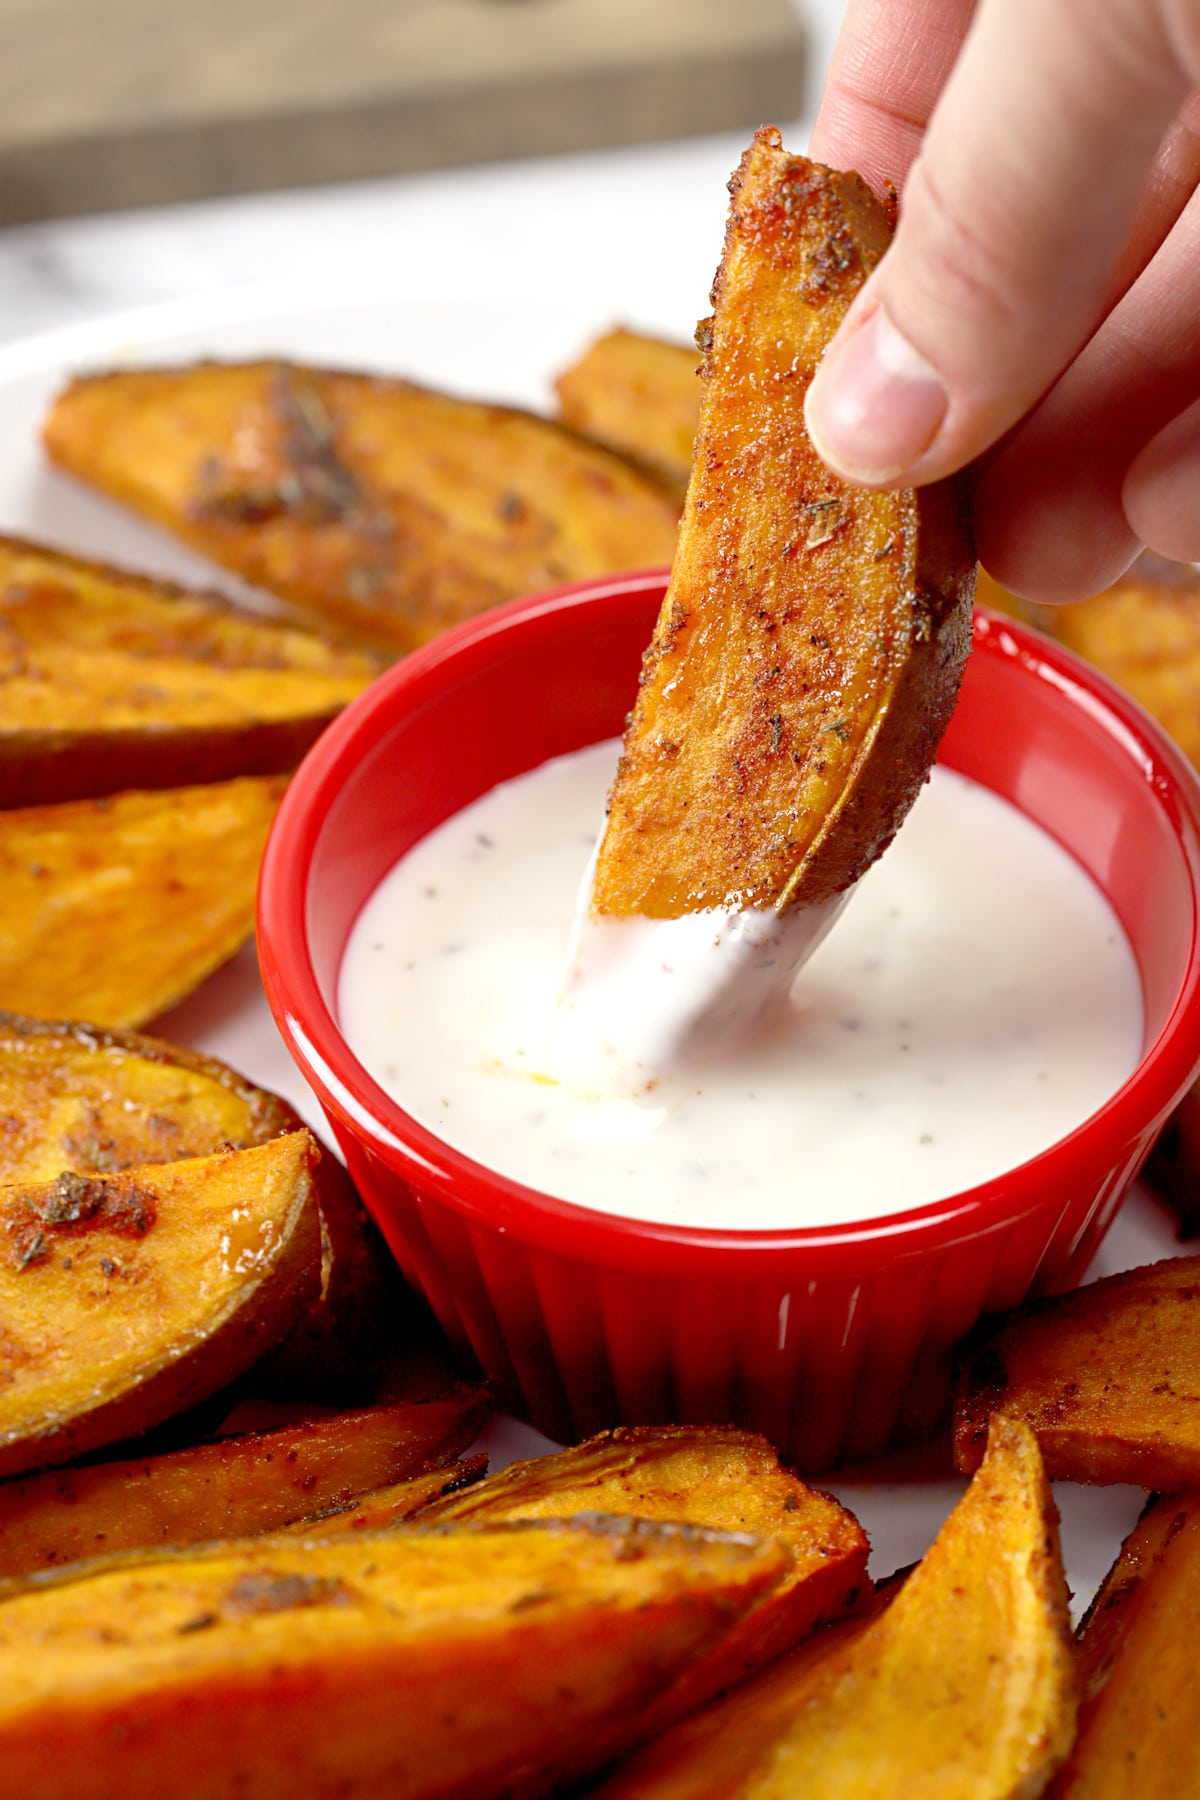 Dipping a sweet potato wedge into a bowl of ranch dressing.